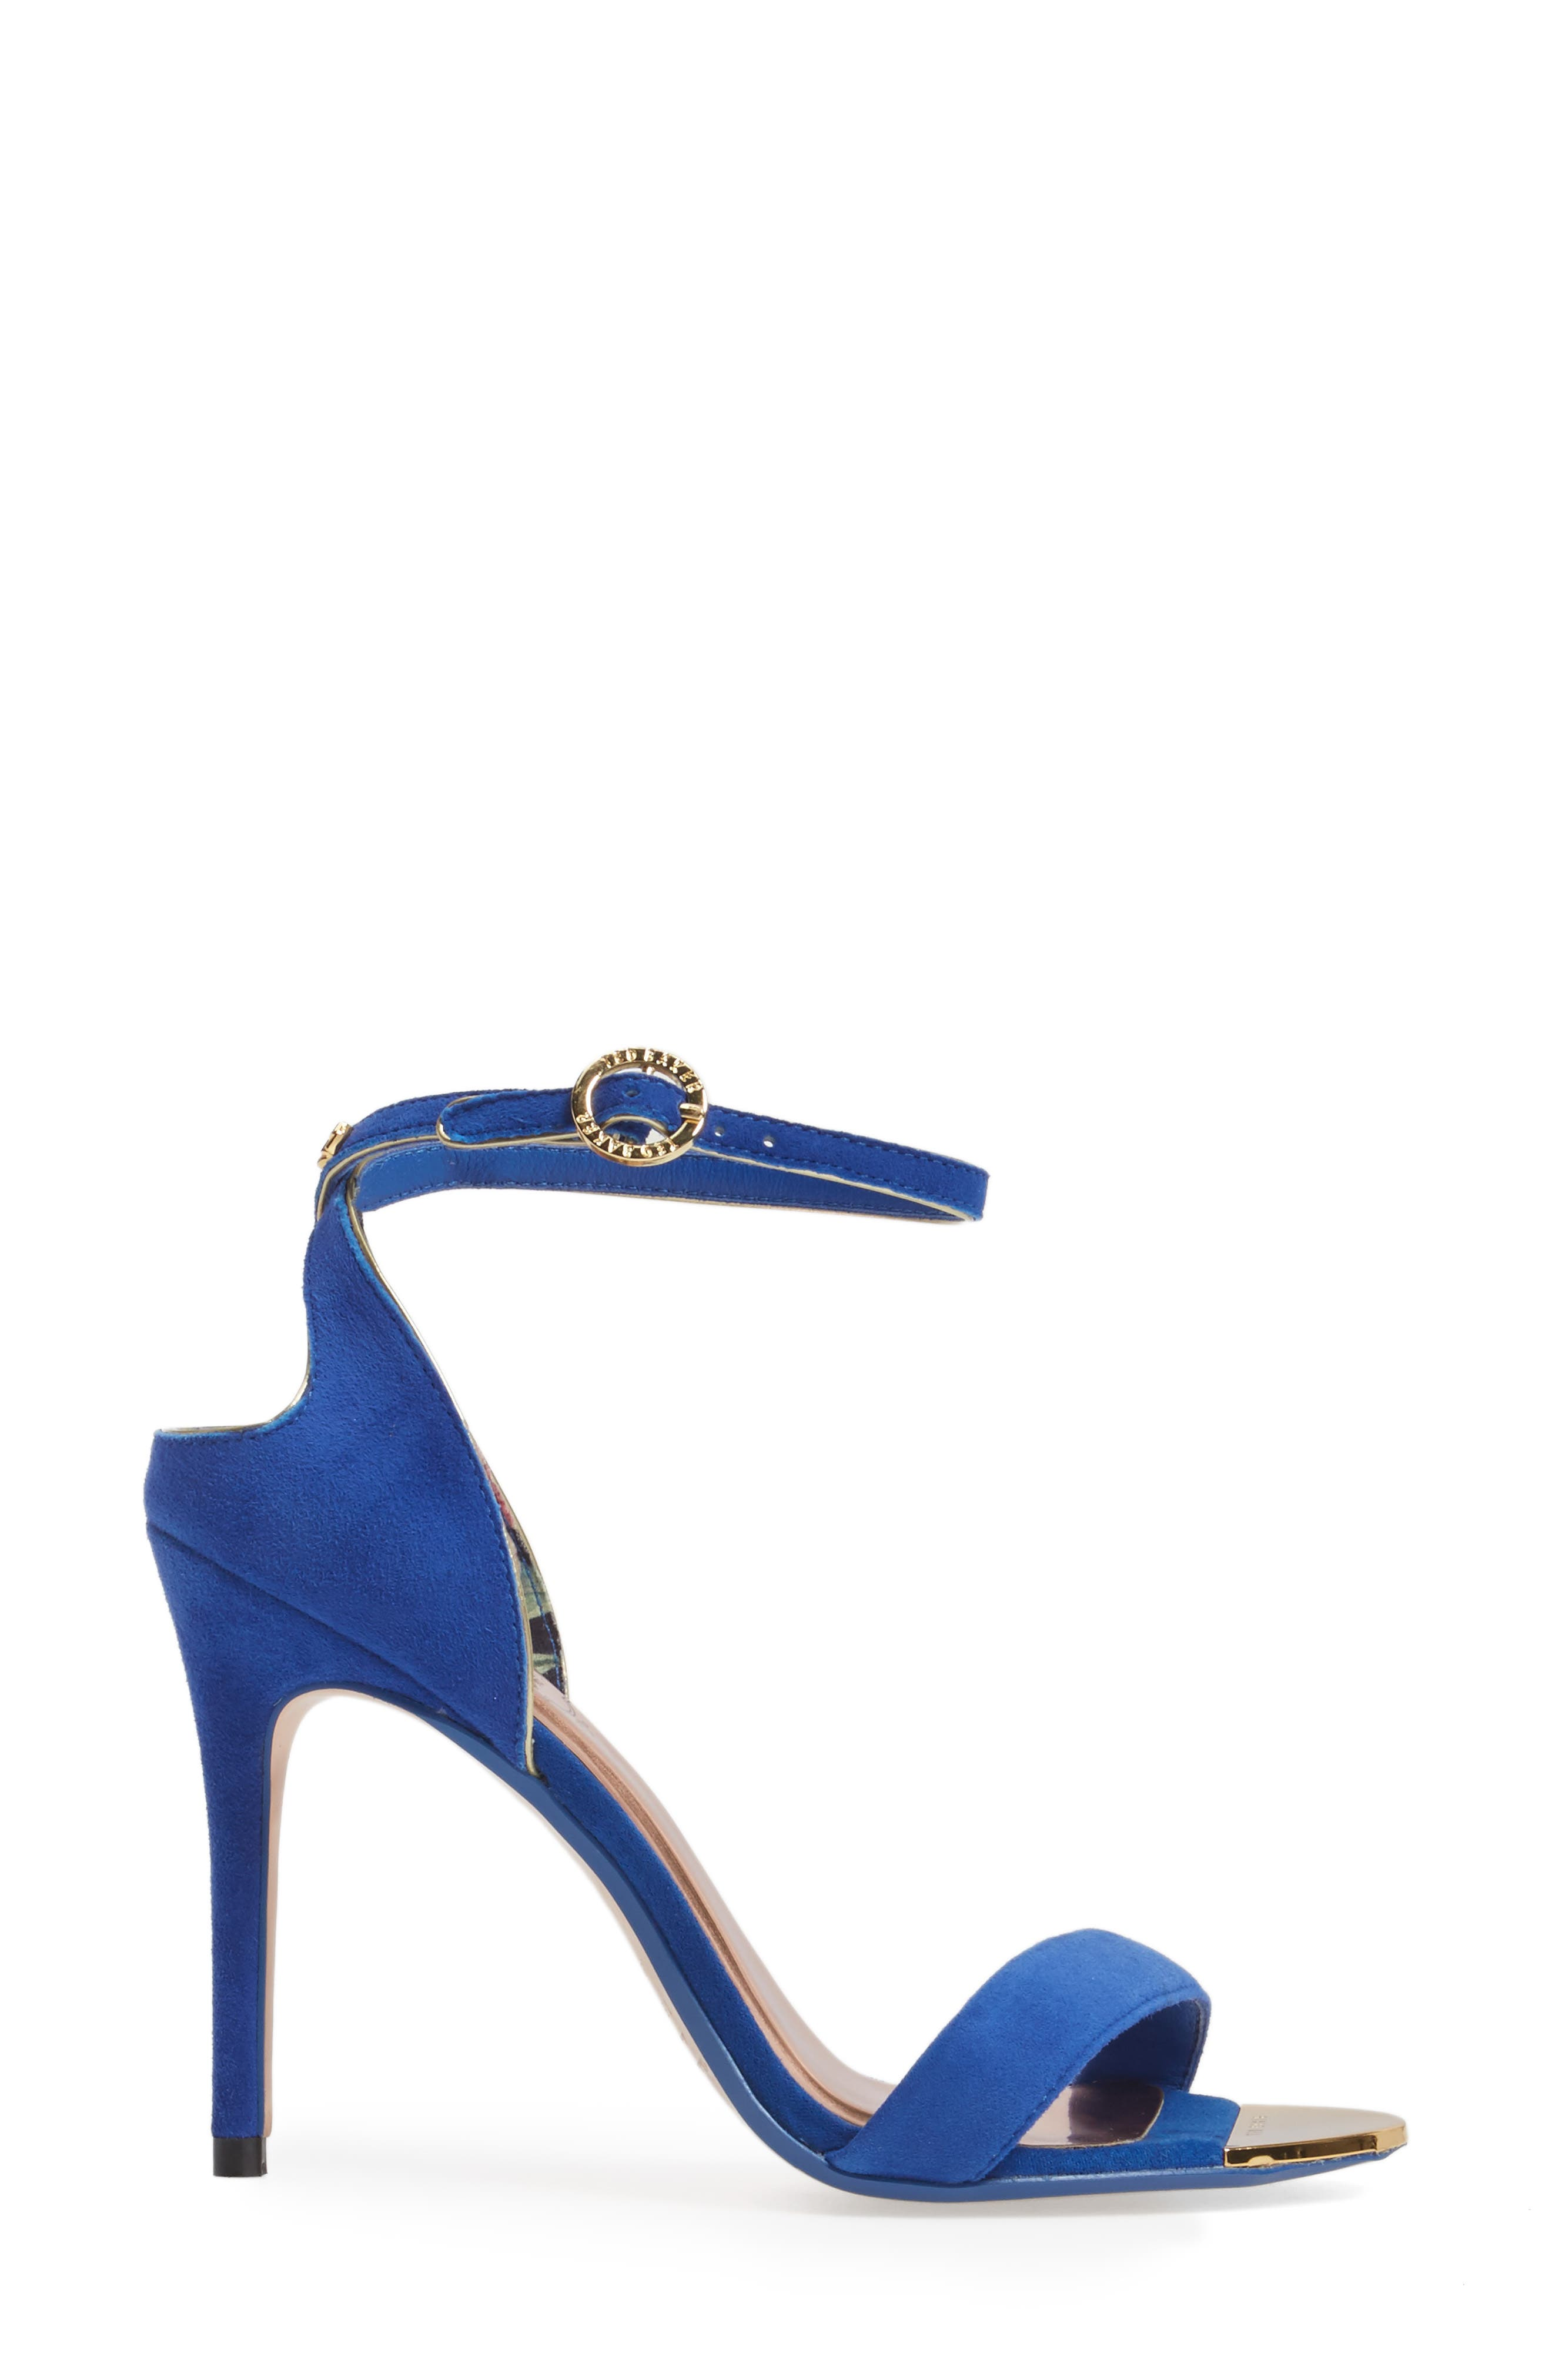 Mirobell Ankle Strap Sandal,                             Alternate thumbnail 3, color,                             Blue Suede